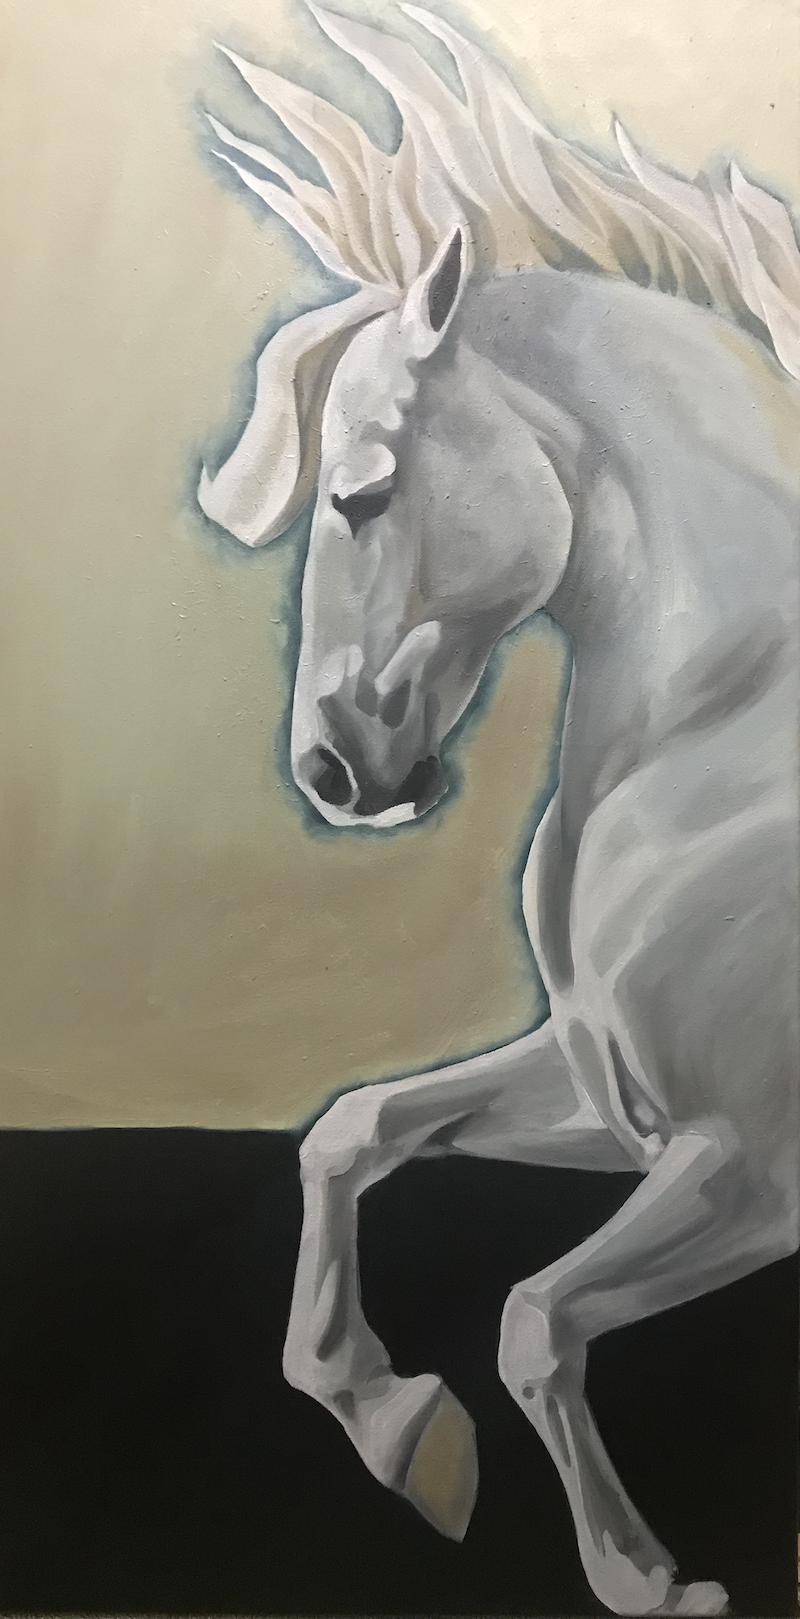 (CreativeWork) Grey Horse IV by Antoinette Stokell. Oil Paint. Shop online at Bluethumb.